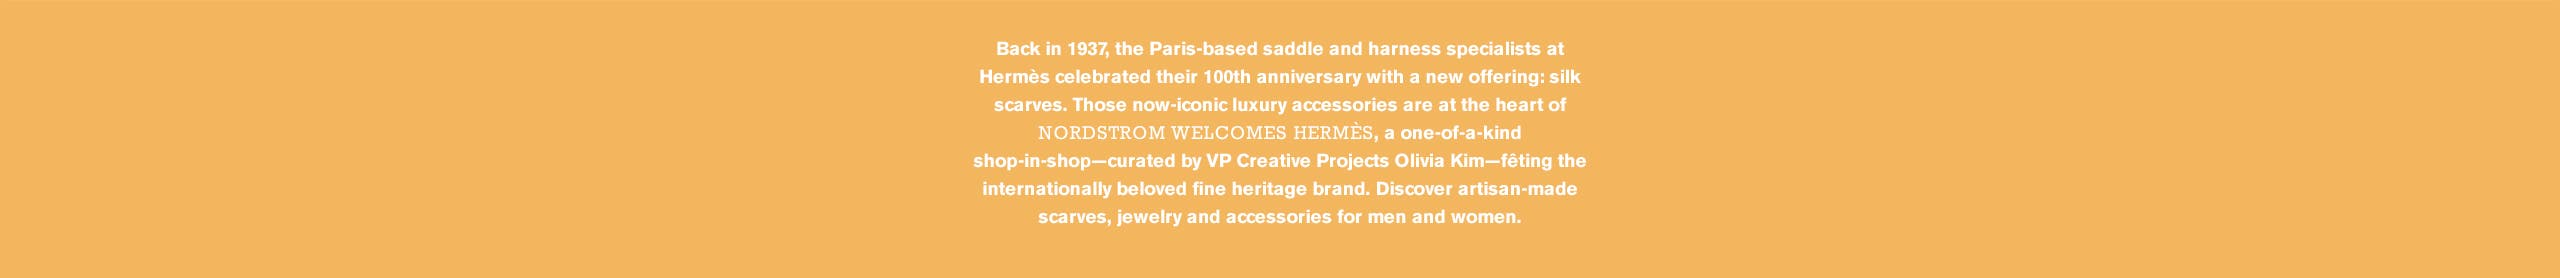 Discover Nordstrom Welcomes Hermès, a one-of-a-kind shop-in-shop fêting the brand's artisan-made scarves, jewelry and accessories for men and women.